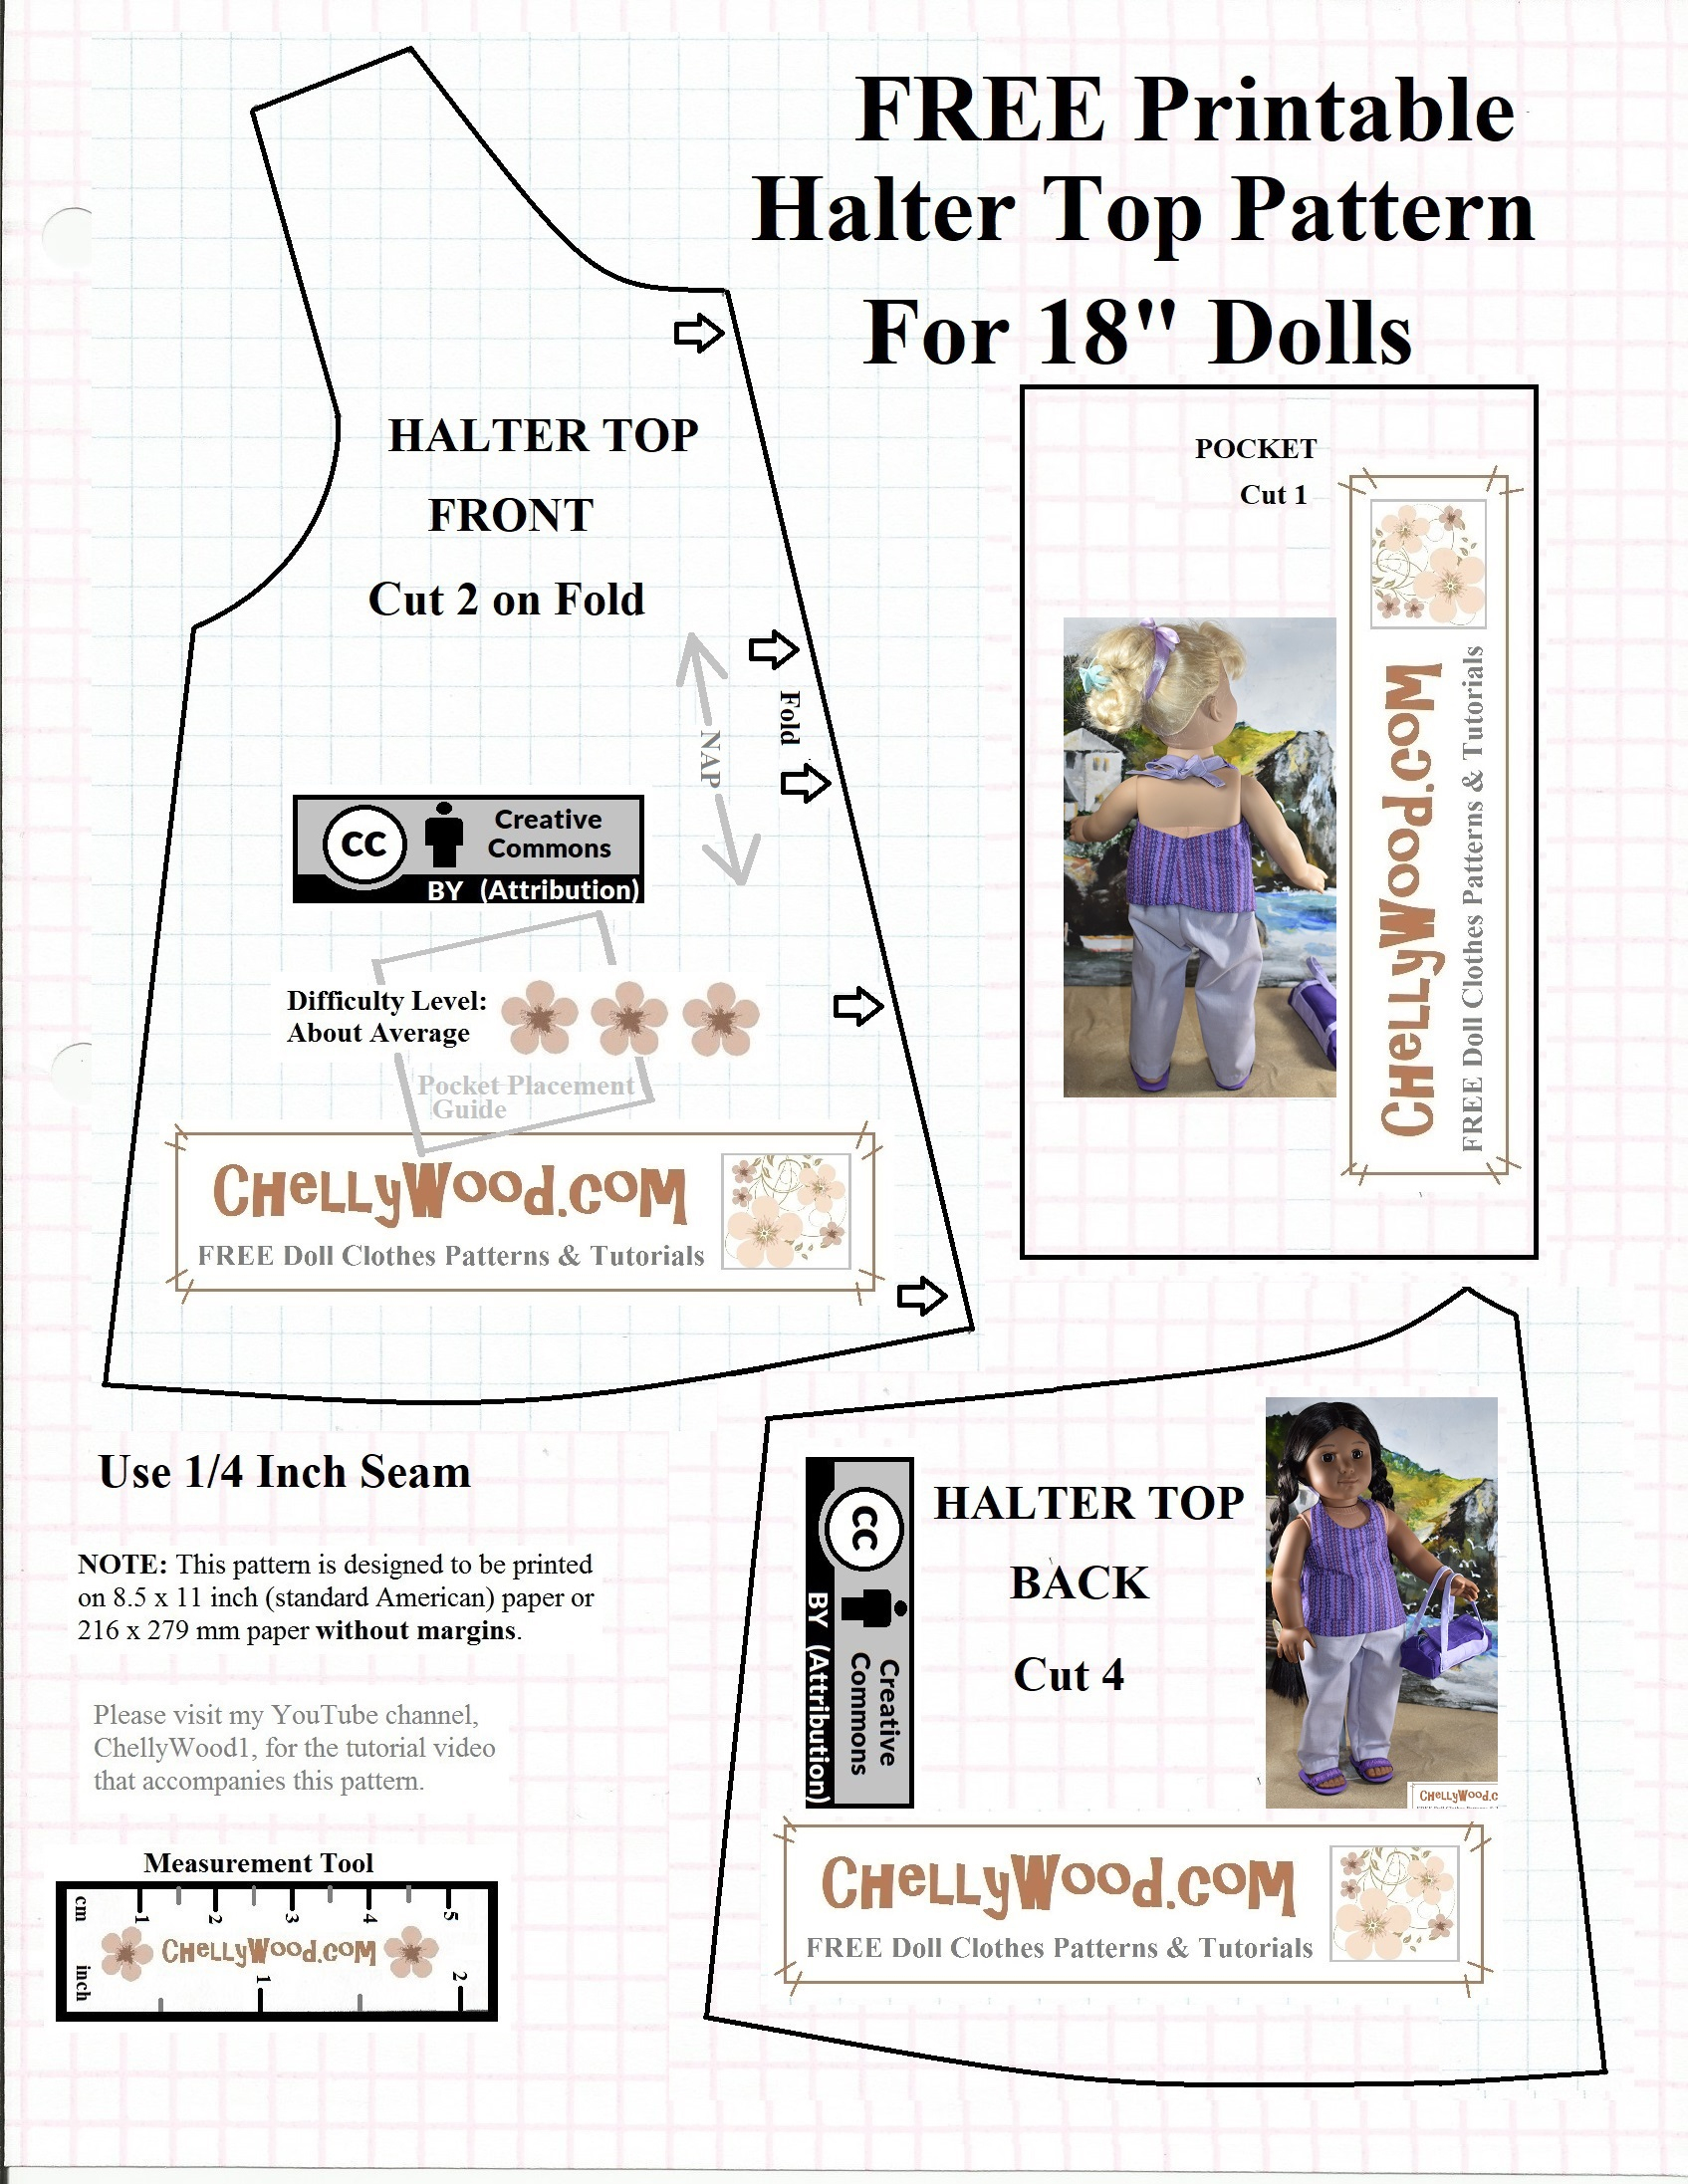 Free #agdoll Summer Shirt Pattern @ Chellywood #sewing 4#dolls - Free Printable Doll Clothes Patterns For 18 Inch Dolls